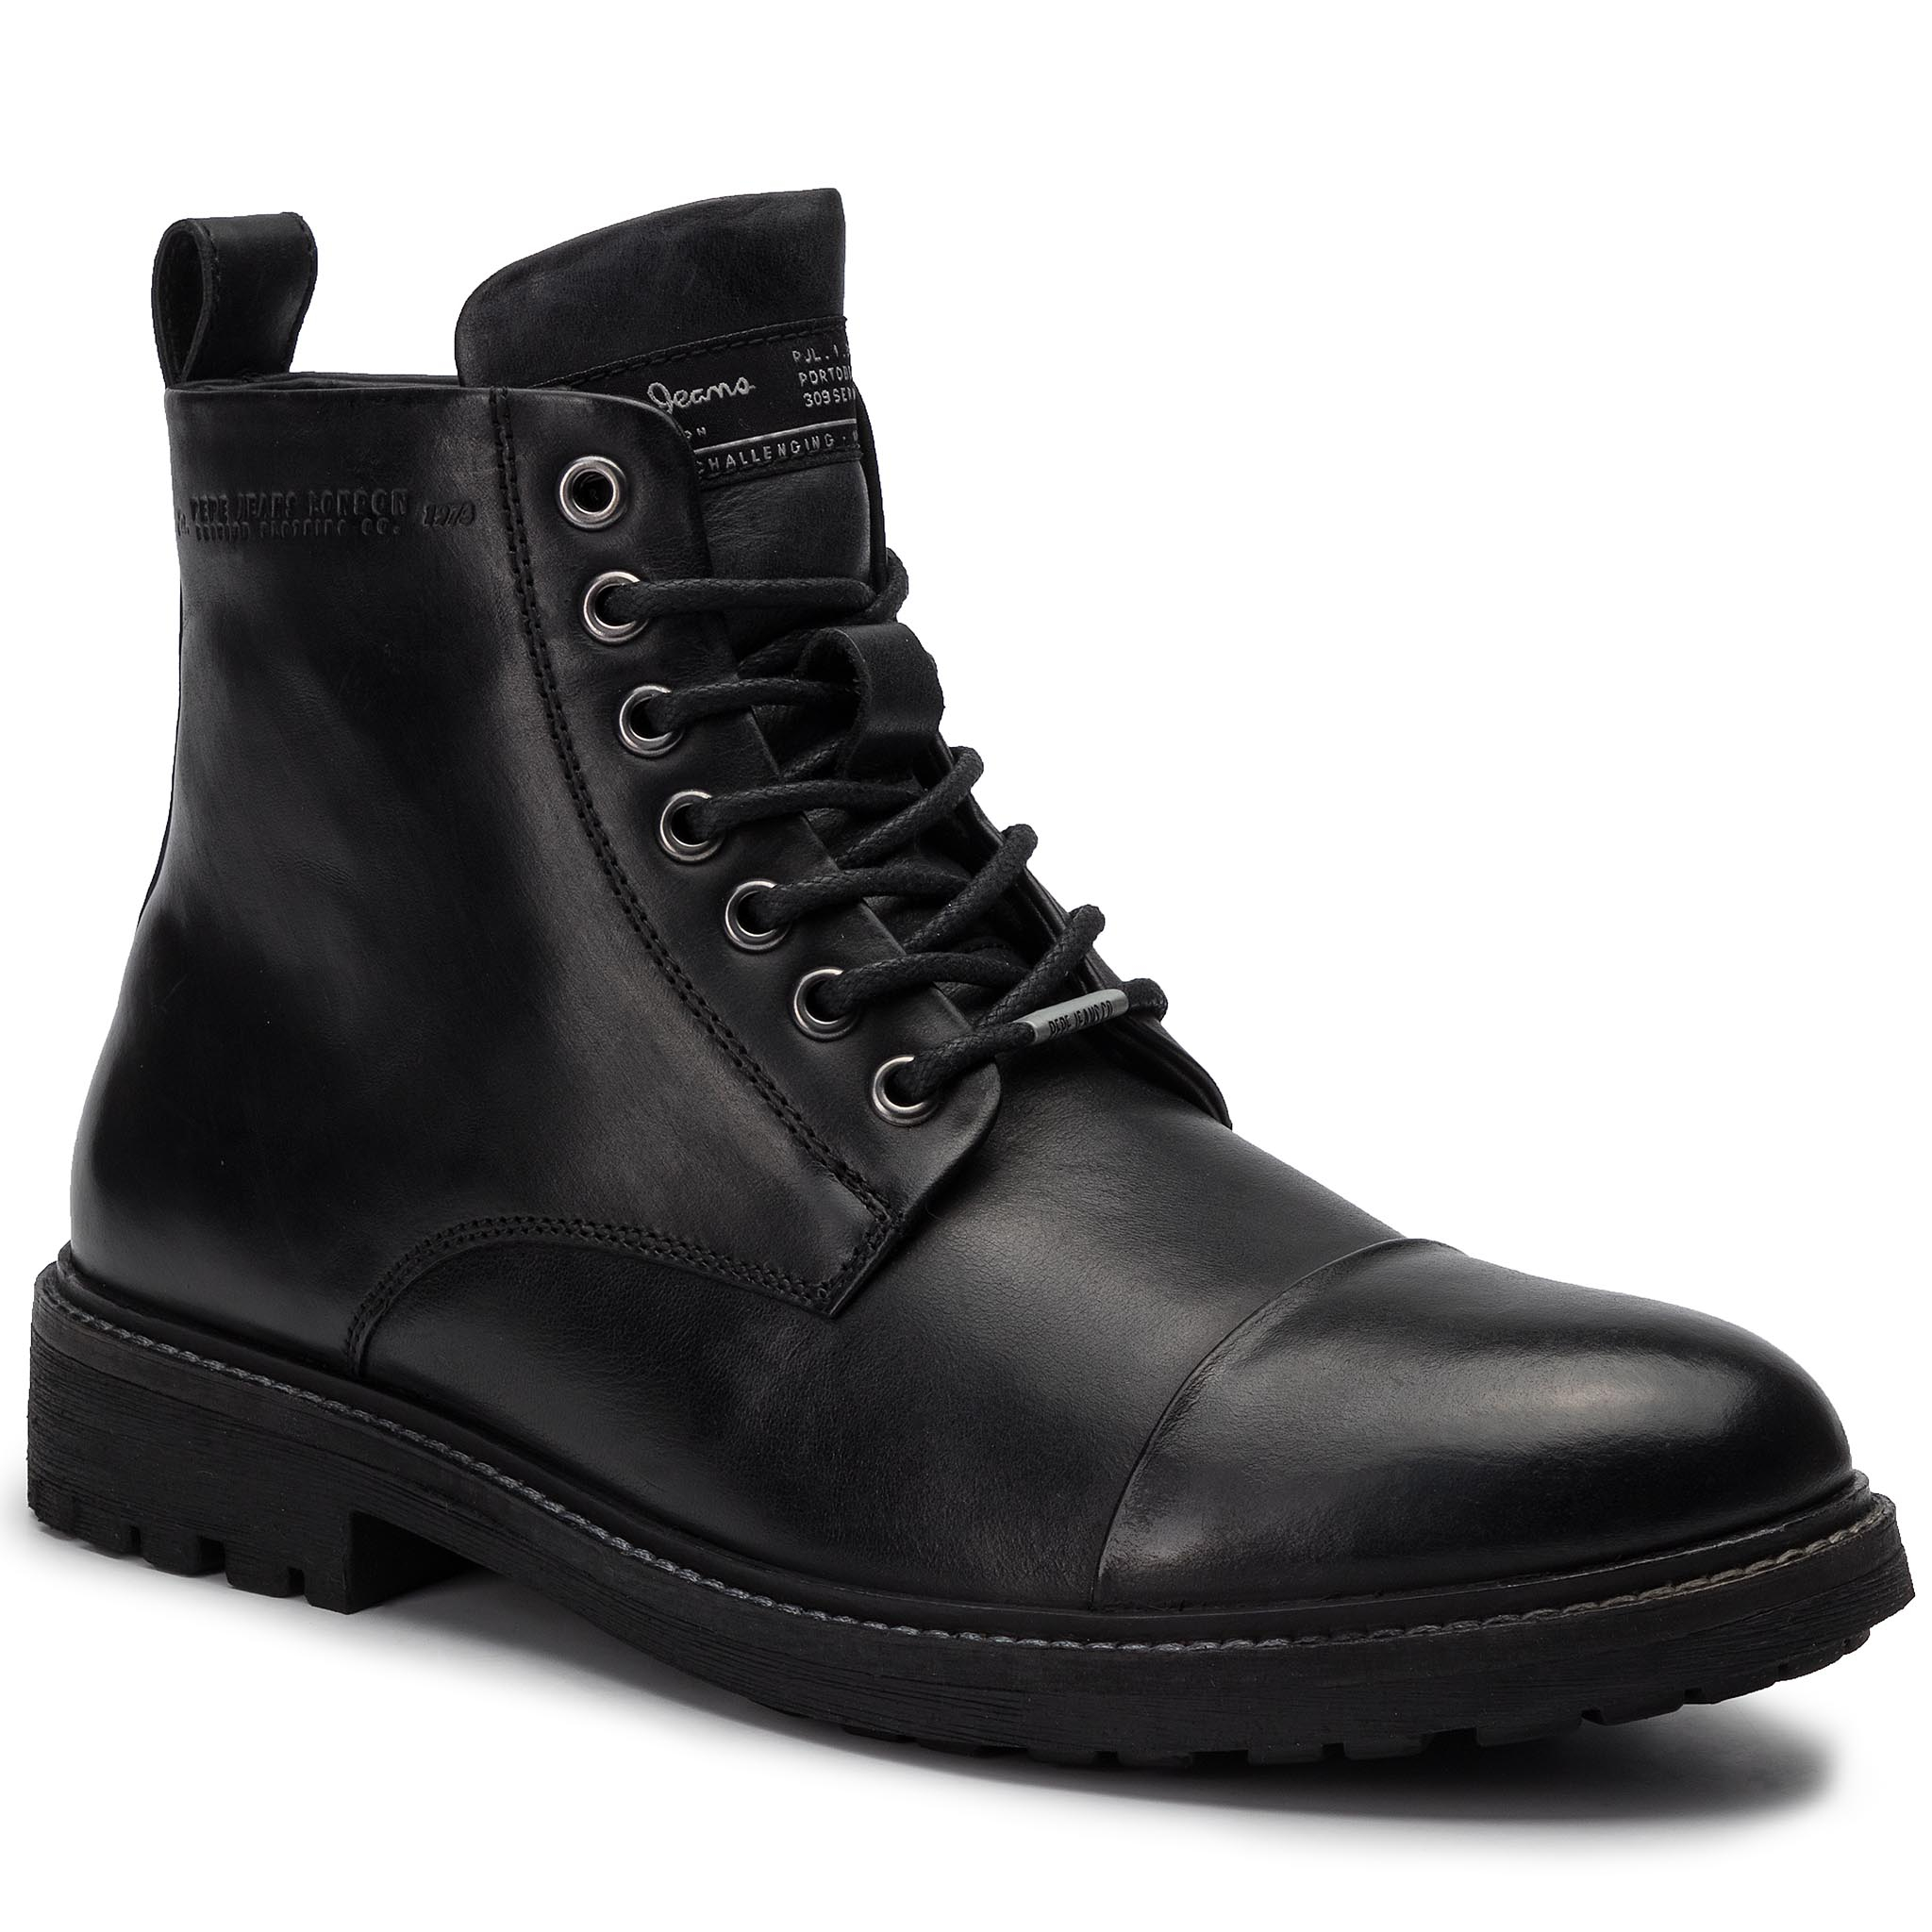 Trappers PEPE JEANS - Porter Boot PMS50178 Black 999